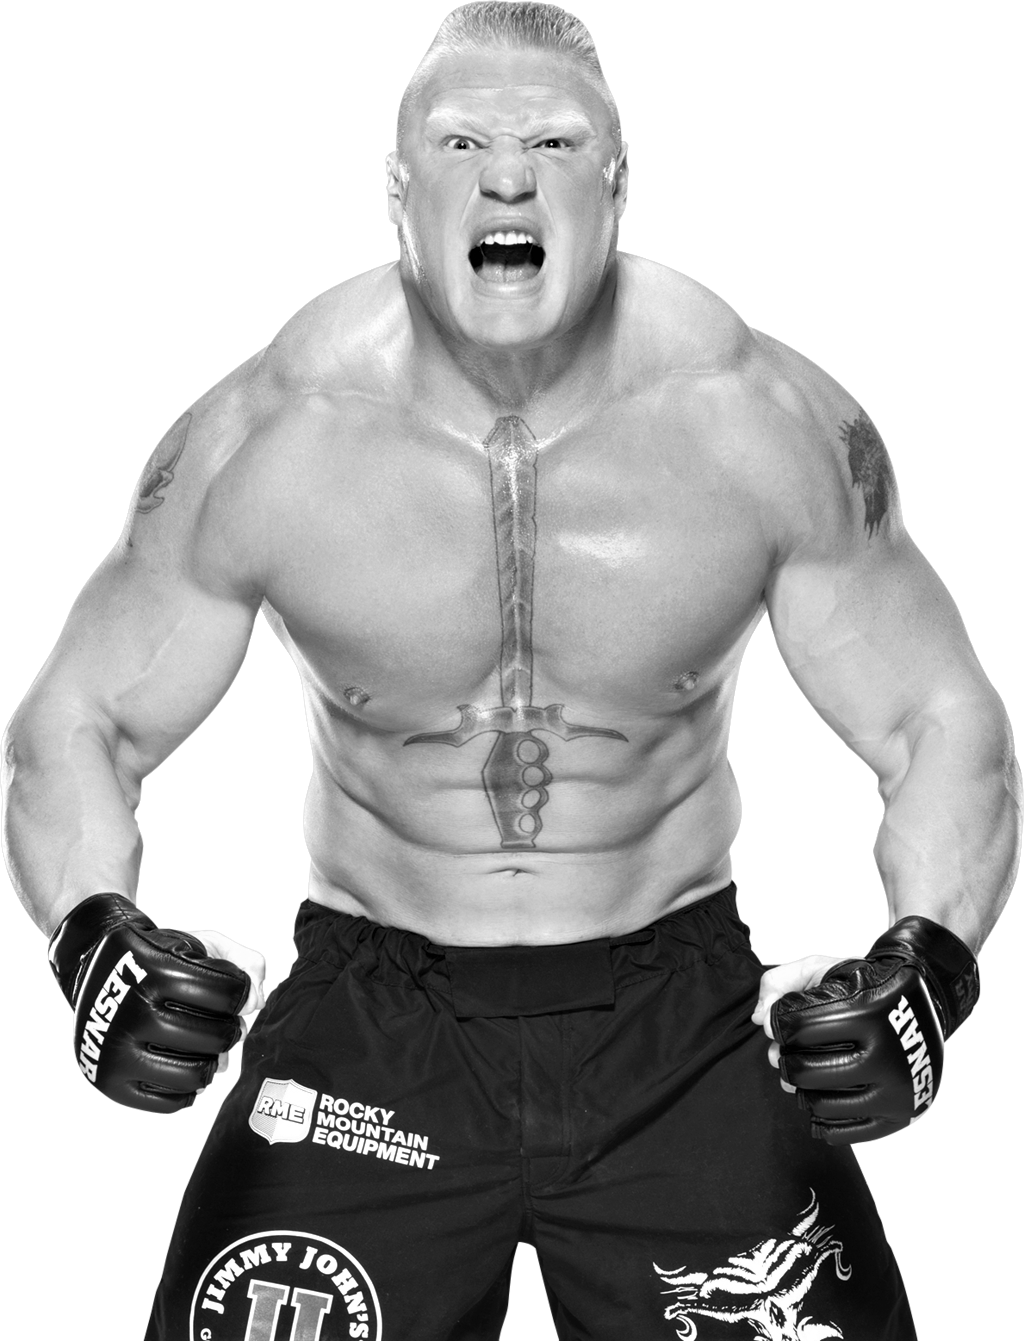 Brock-Lesnar-Transparent-Background